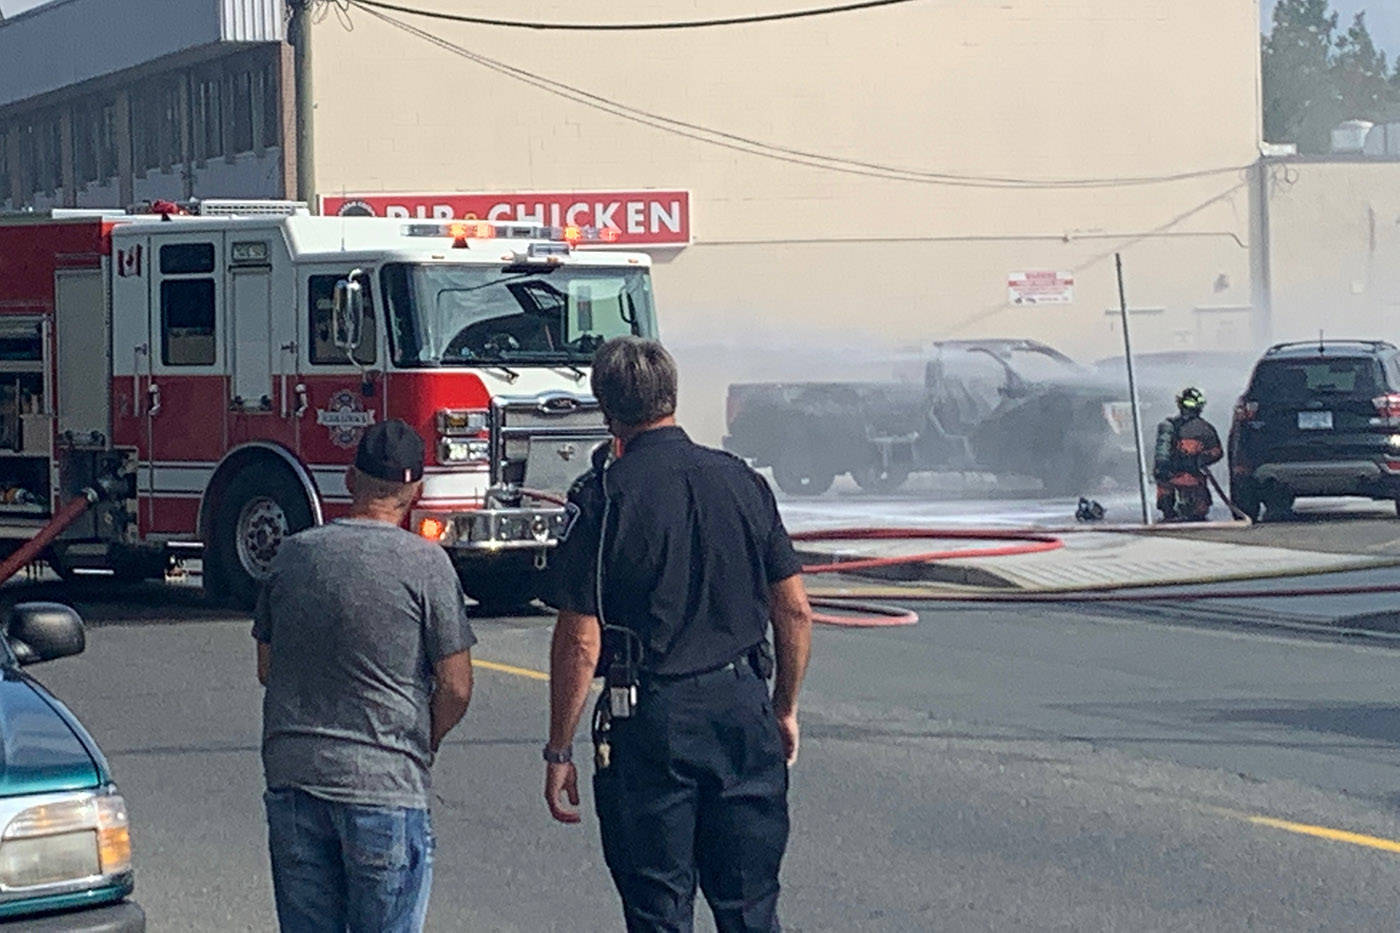 Chilliwack Fire Department responded to a truck on fire which was carrying a propane tank at Wellington Avenue and College Street in Chilliwack on Friday, Aug. 27, 2021. (Paul Henderson/ Chilliwack Progress)